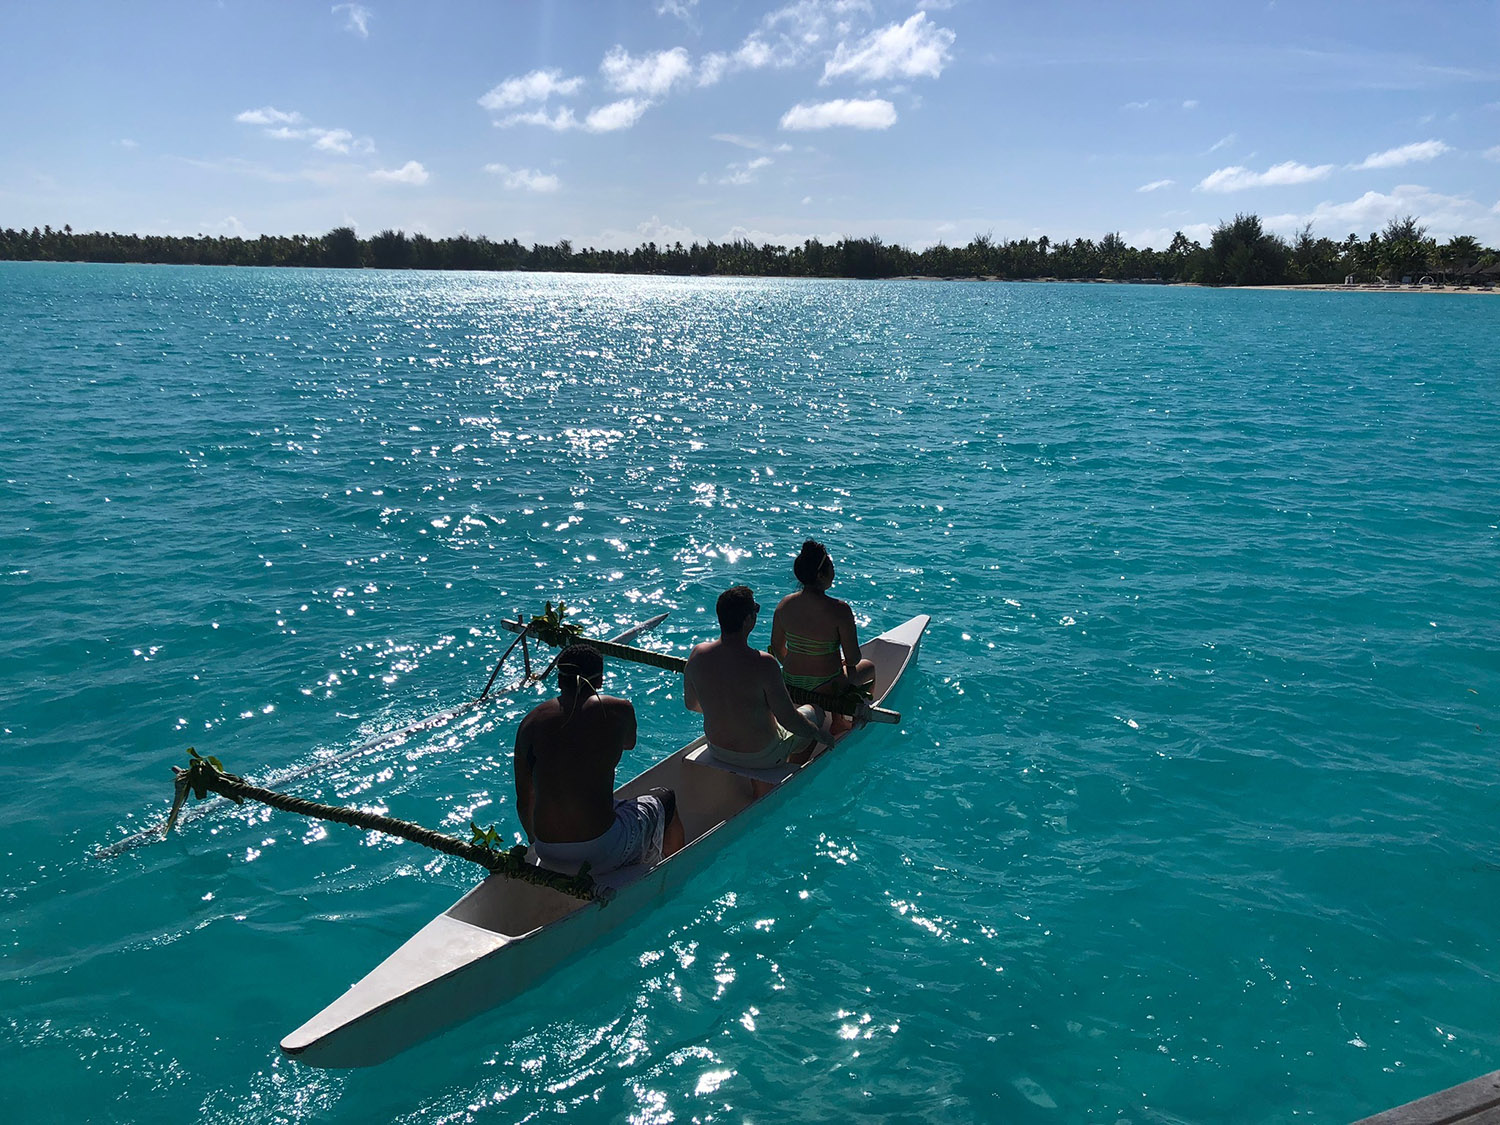 The Canoe Breakfast includes a ride around the lagoon.